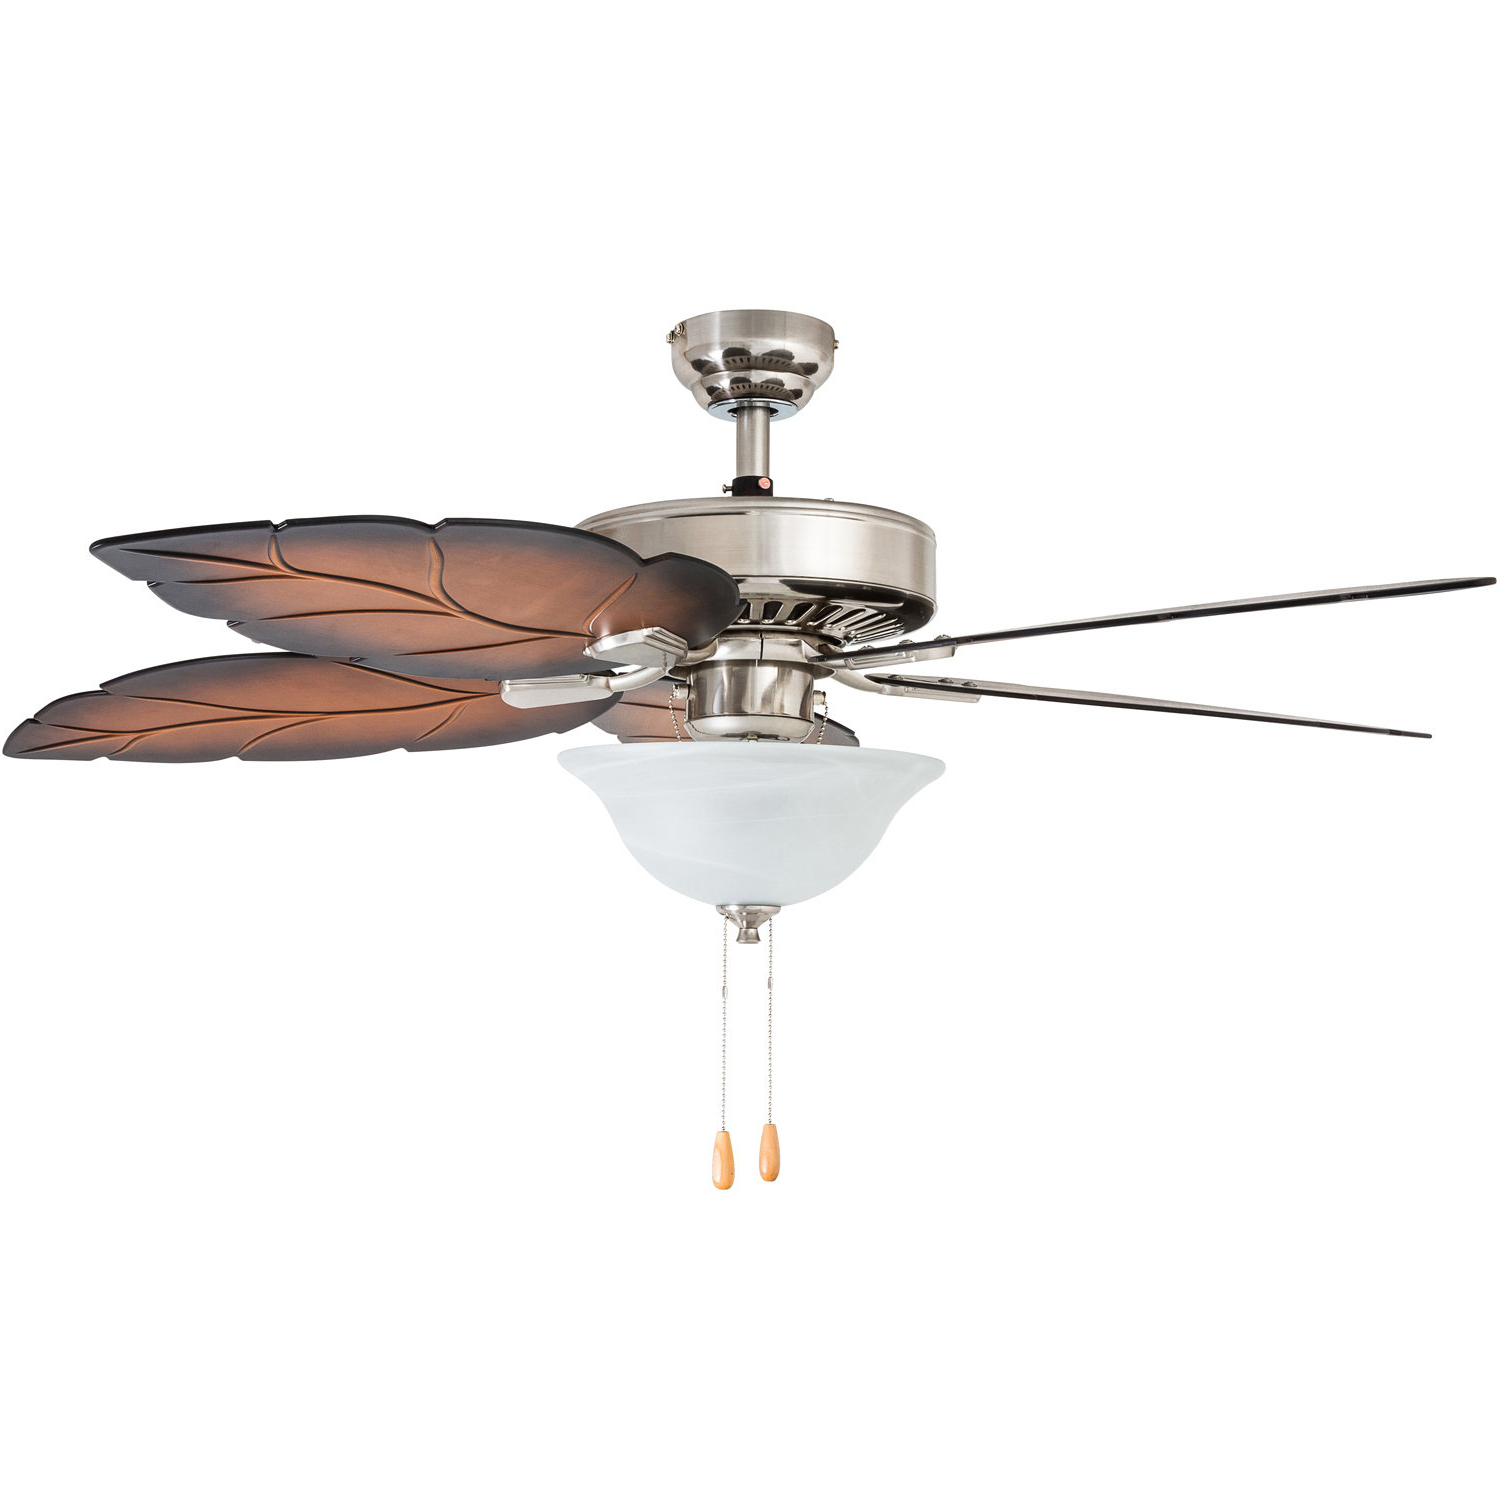 "52"" Monterry 5 Blade Led Ceiling Fan For Current Mccarthy 5 Blade Ceiling Fans (View 10 of 20)"